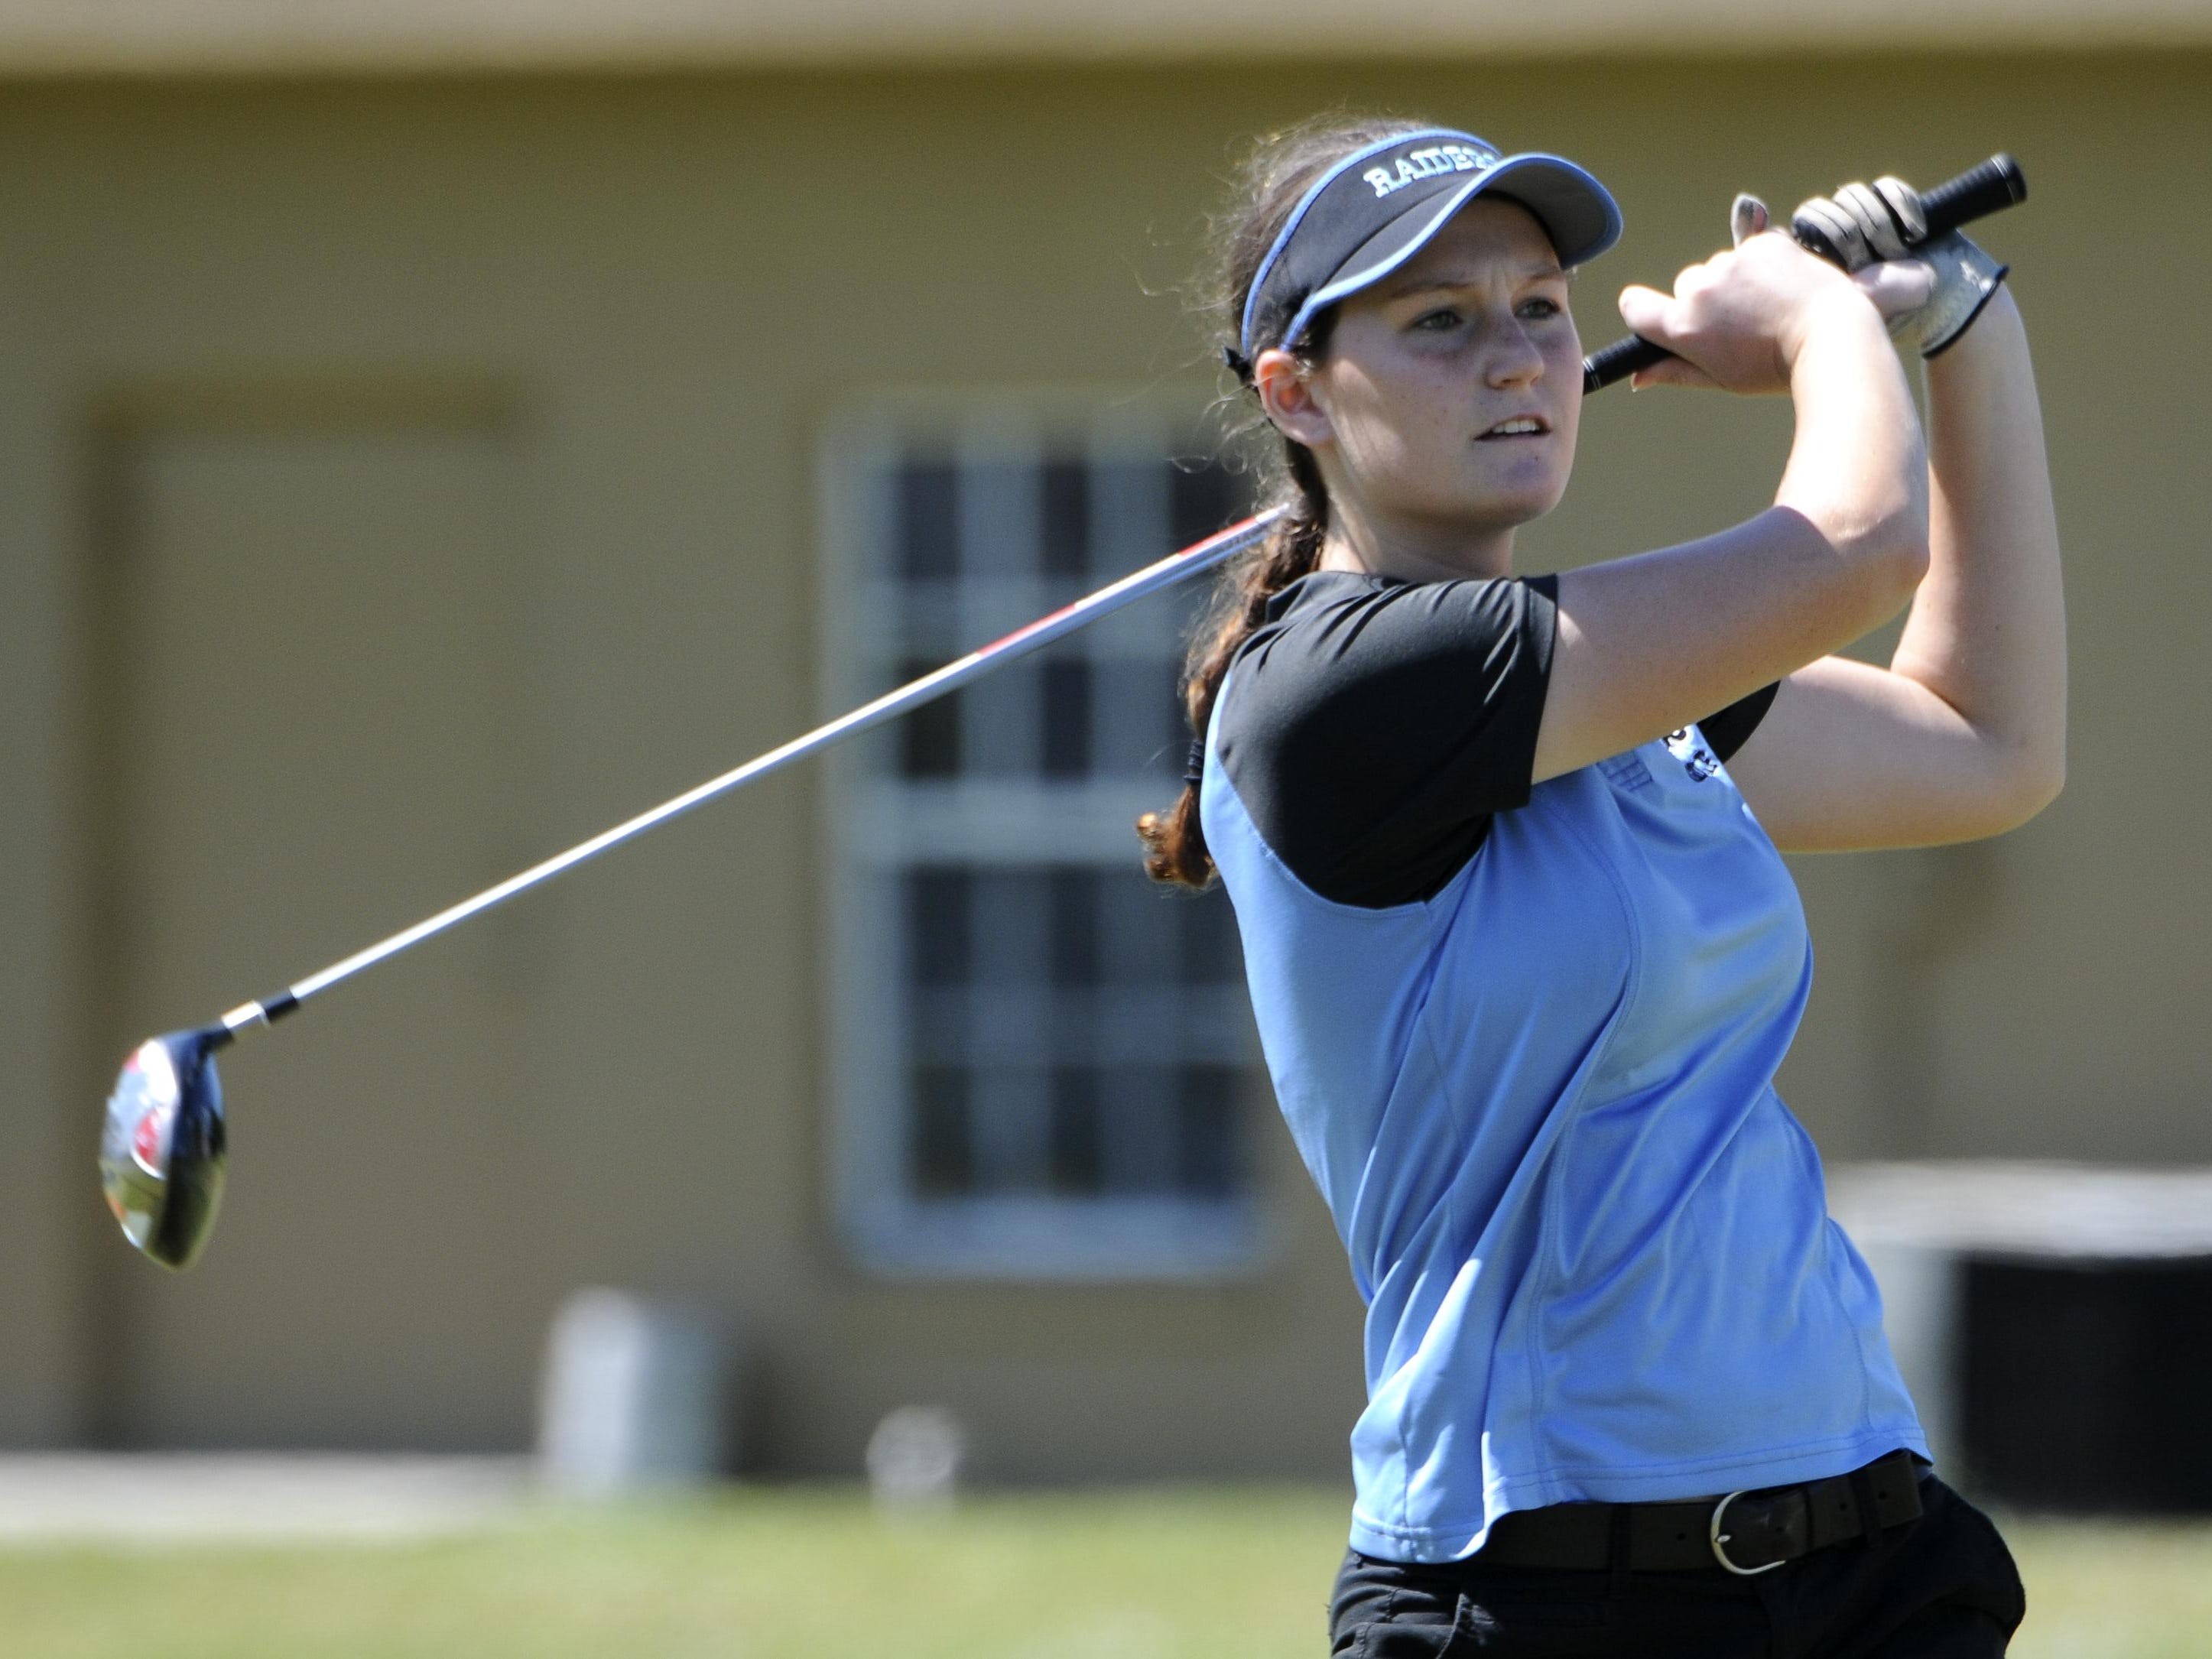 Savannah Simpson of Rockledge watches her tee shot during the Cape Coast Conference girls golf tournament Tuesday.